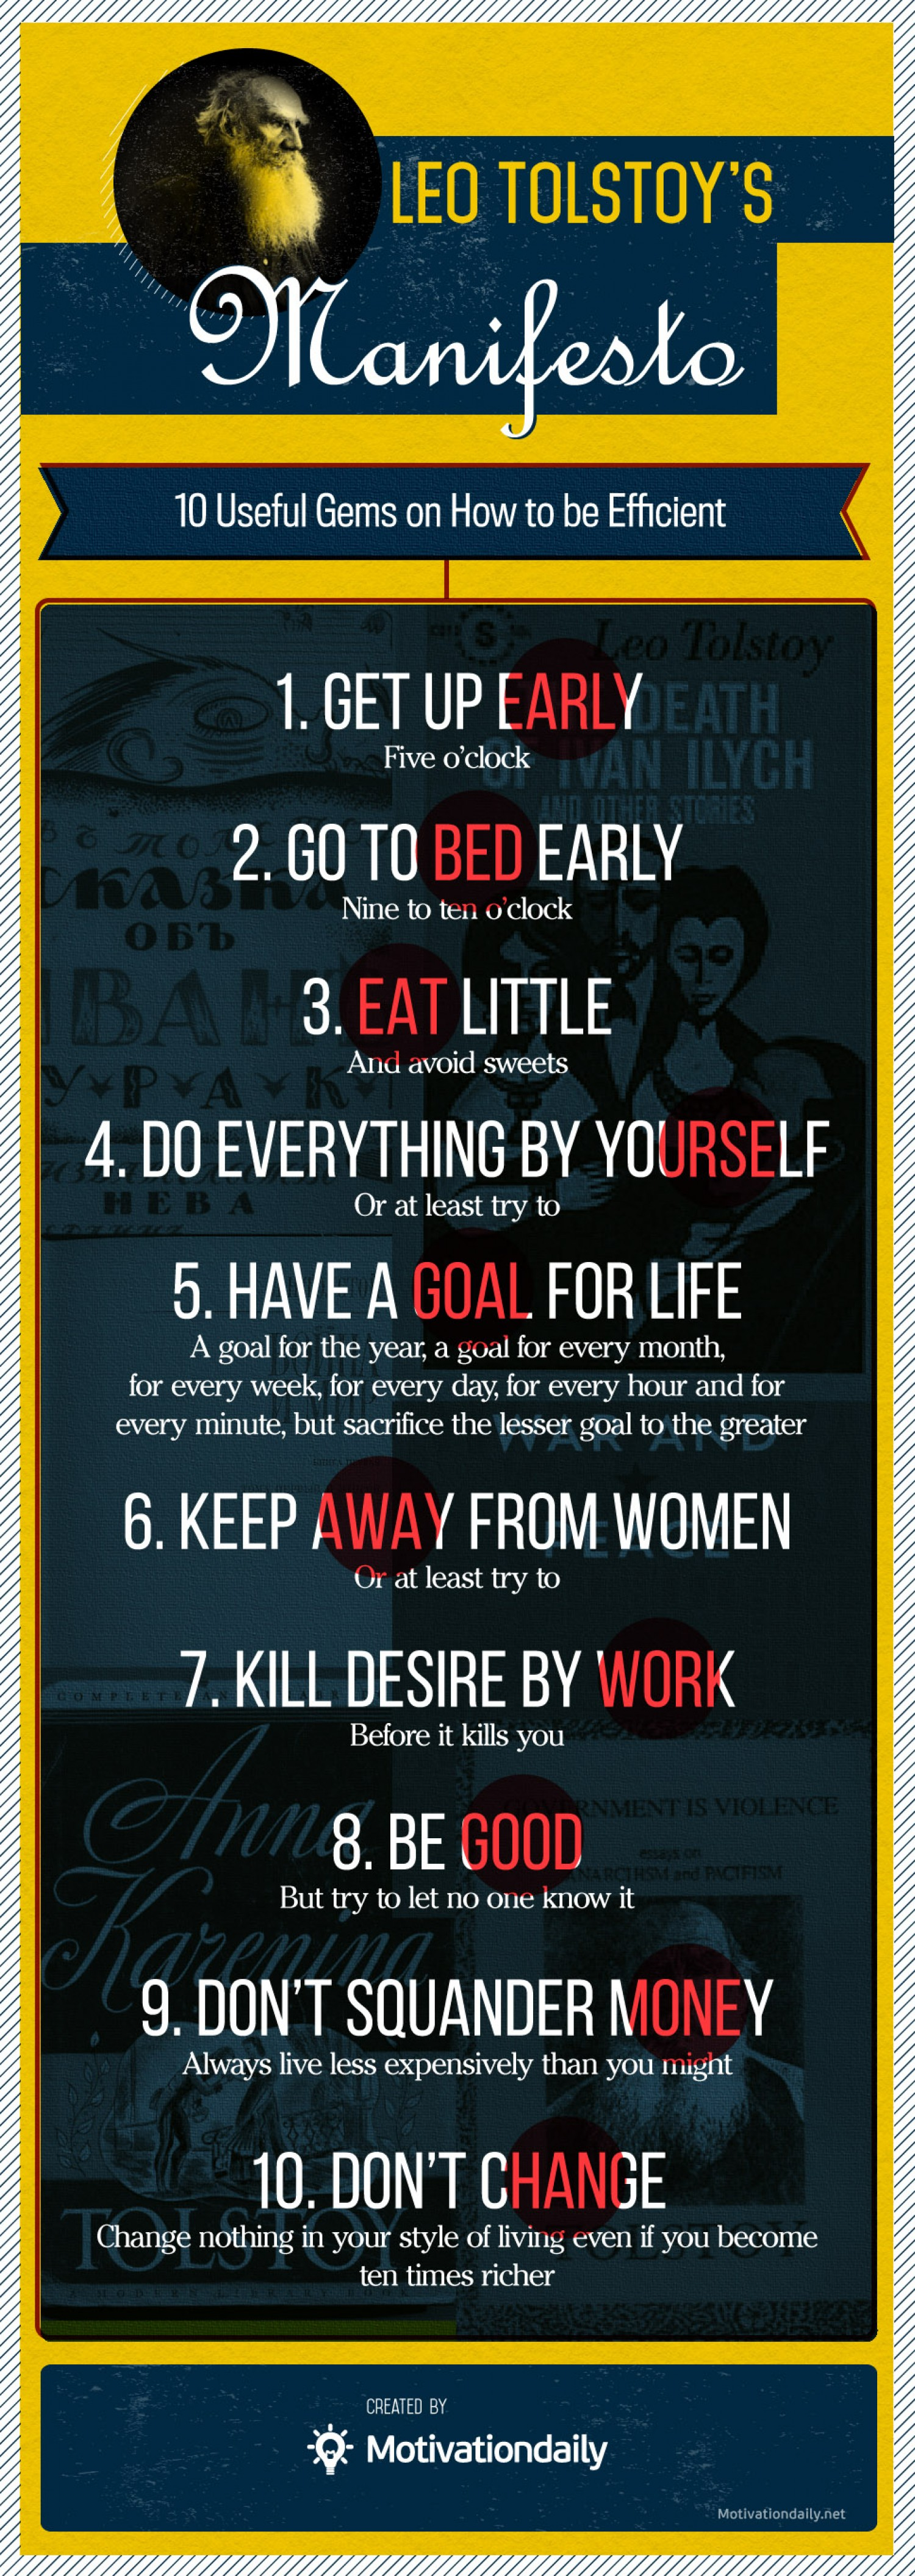 Leo Tolstoy's 10 Rules For Life